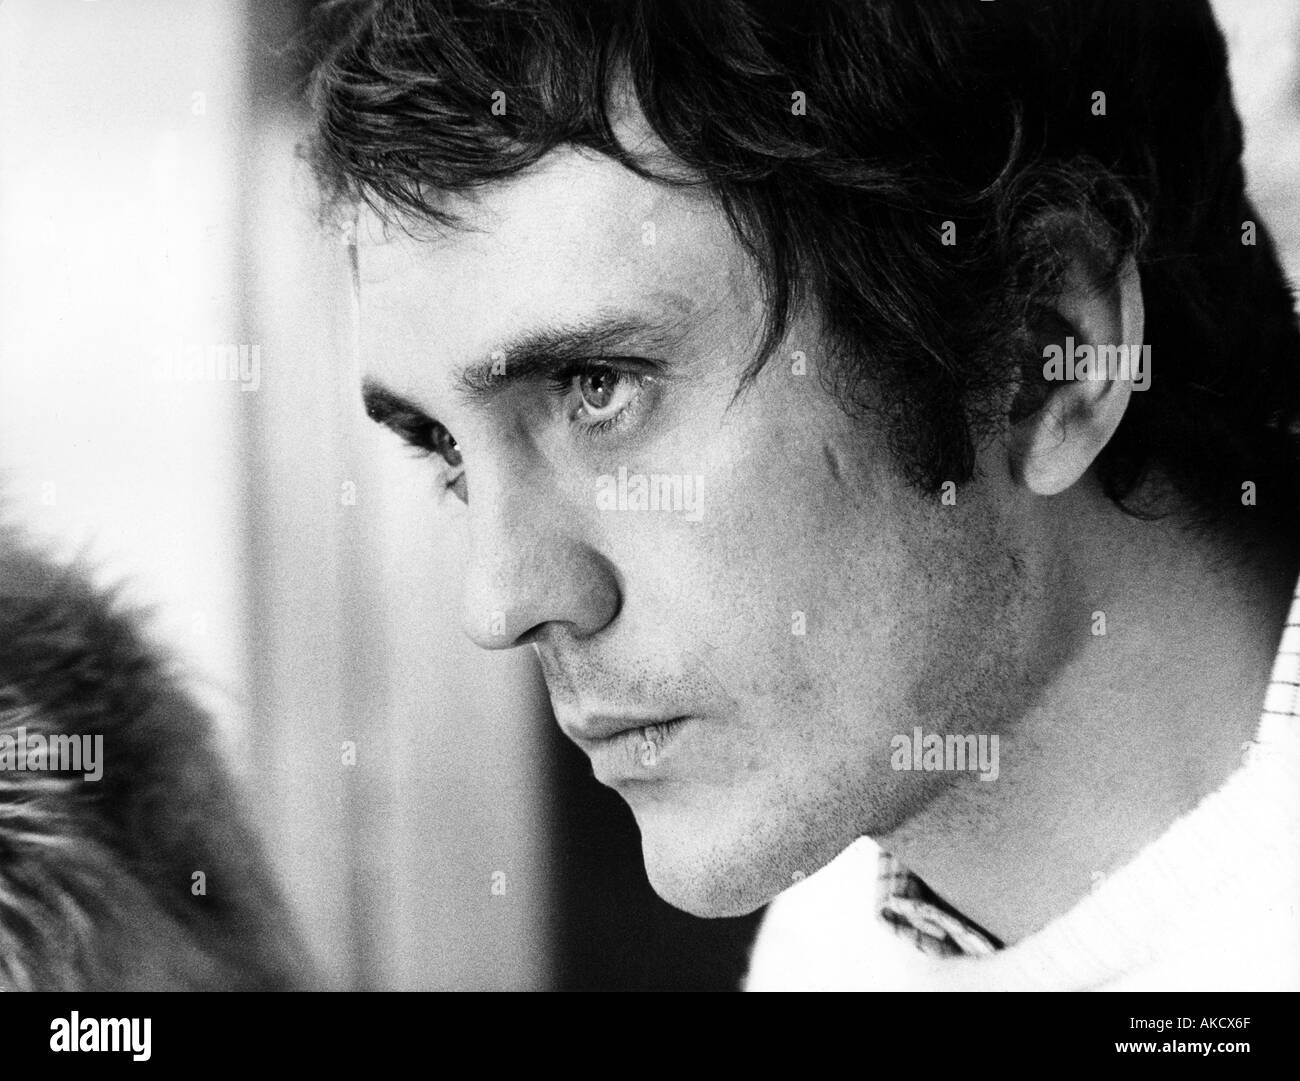 TERENCE STAMP British actor - Stock Image